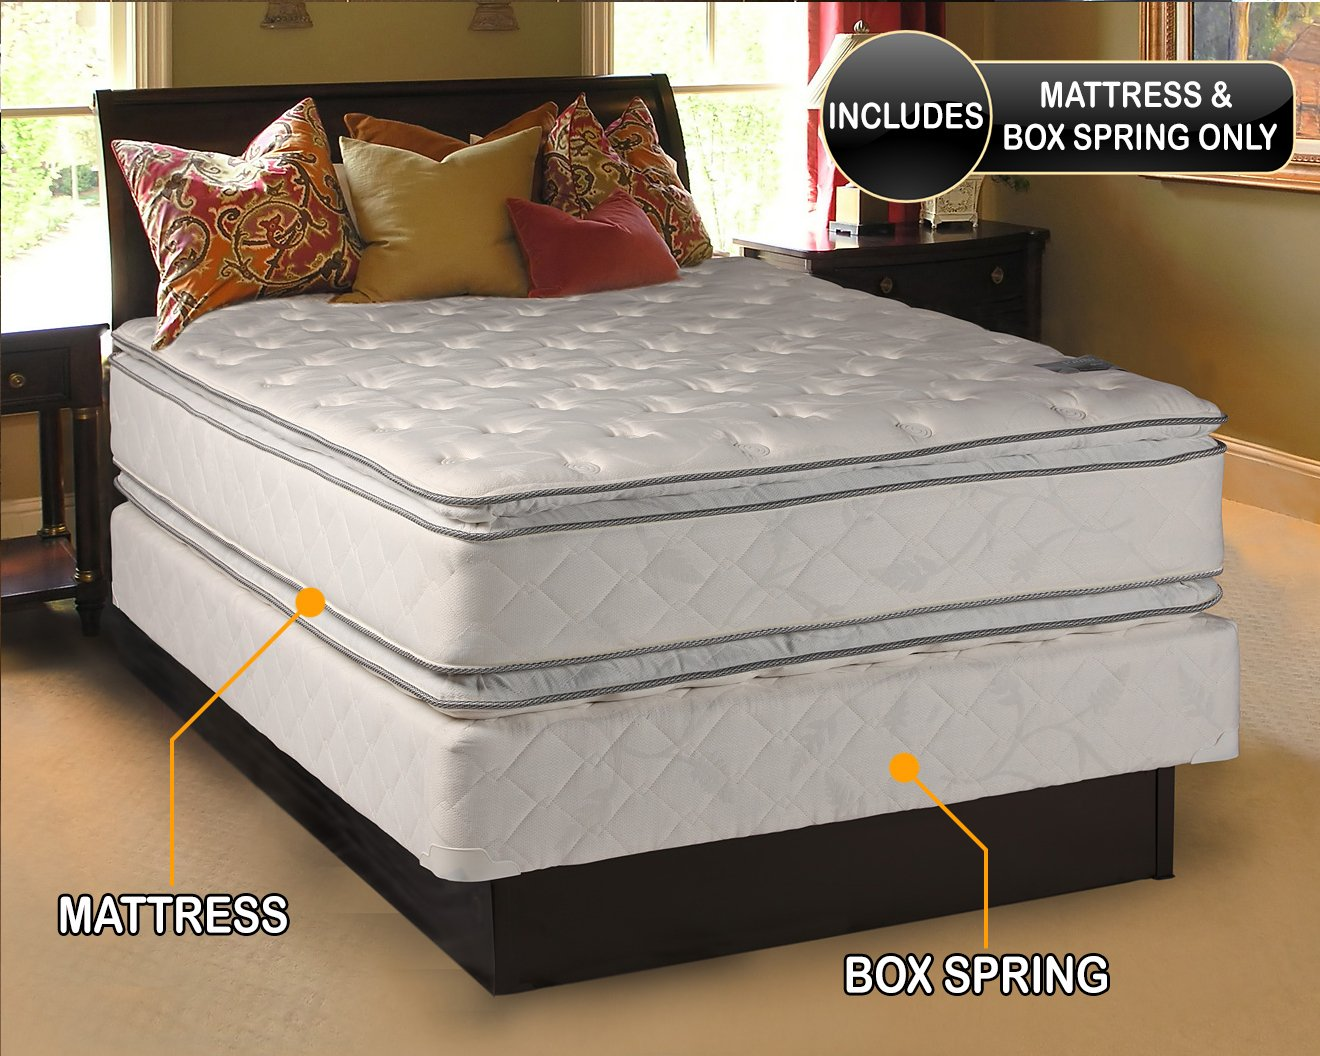 Dream Solutions Medium Soft PillowTop Mattress and Box Spring Set (Full Size) Double-Sided Sleep System with Enhanced Cushion Support- Fully Assembled, Back Support, Longlasting by Dream Solutions USA